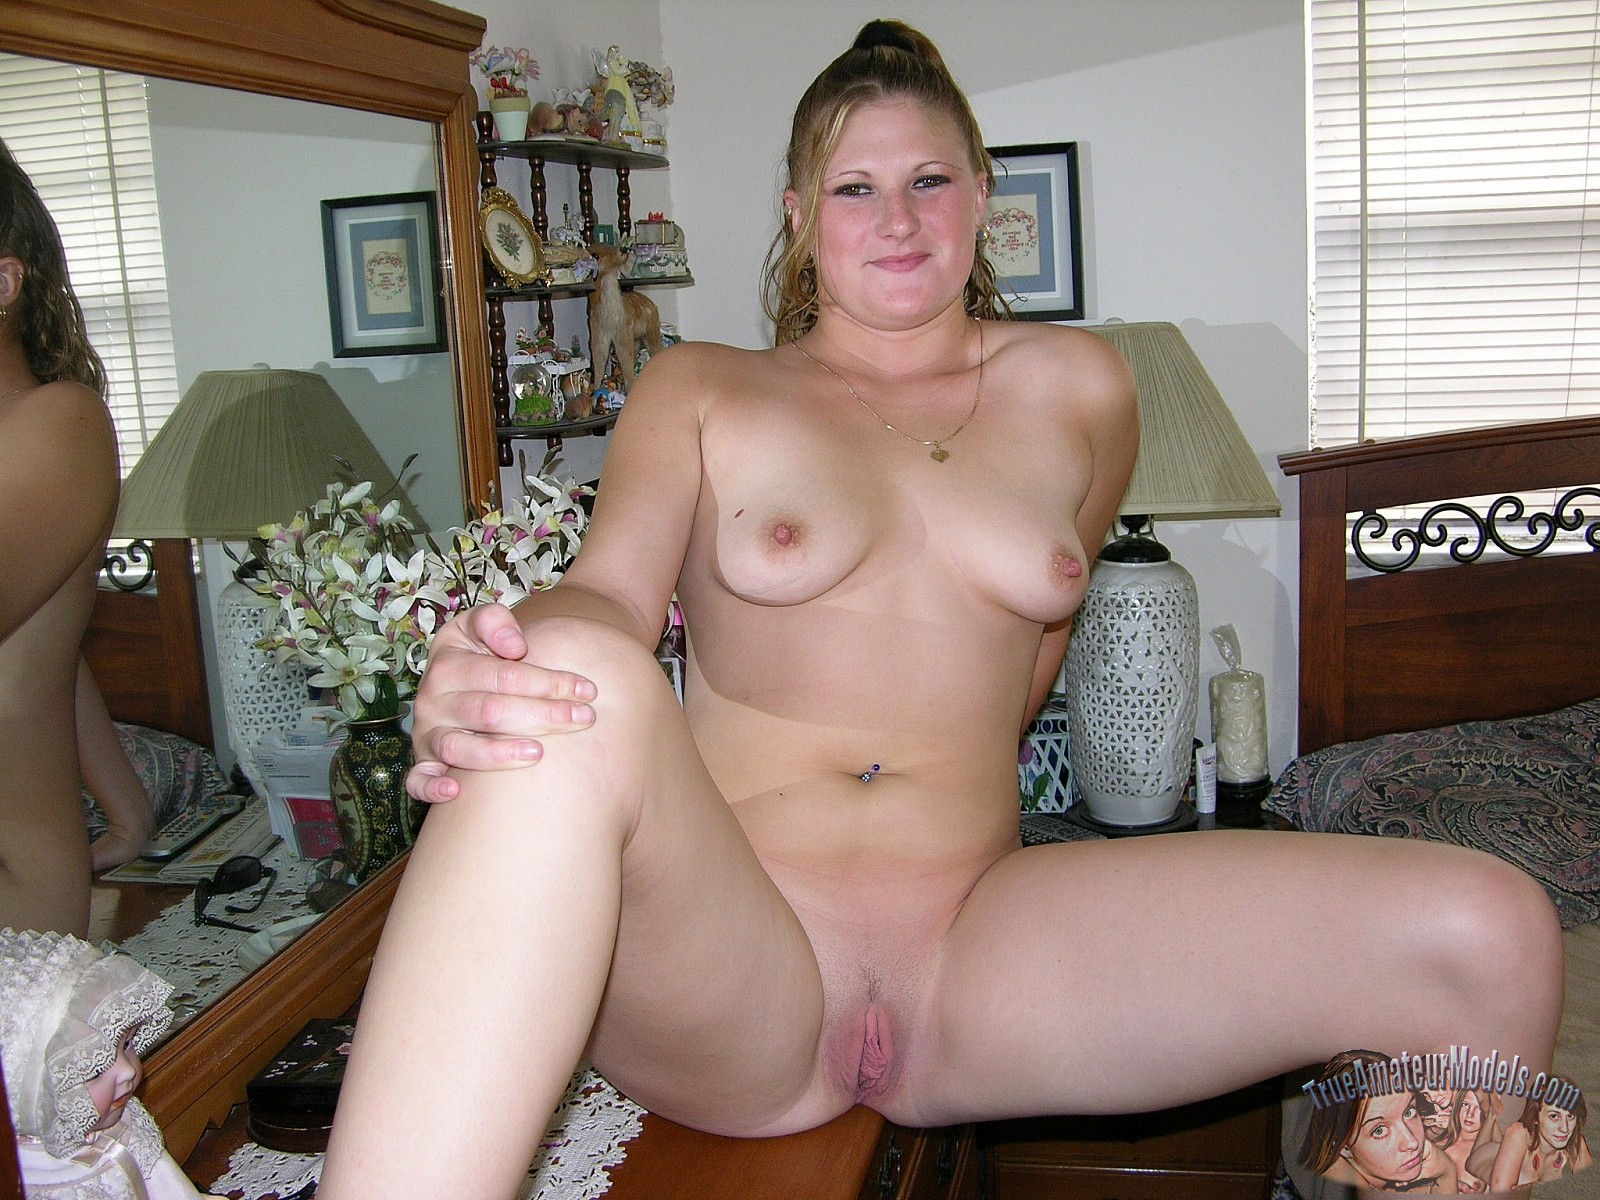 southern girls naked sex